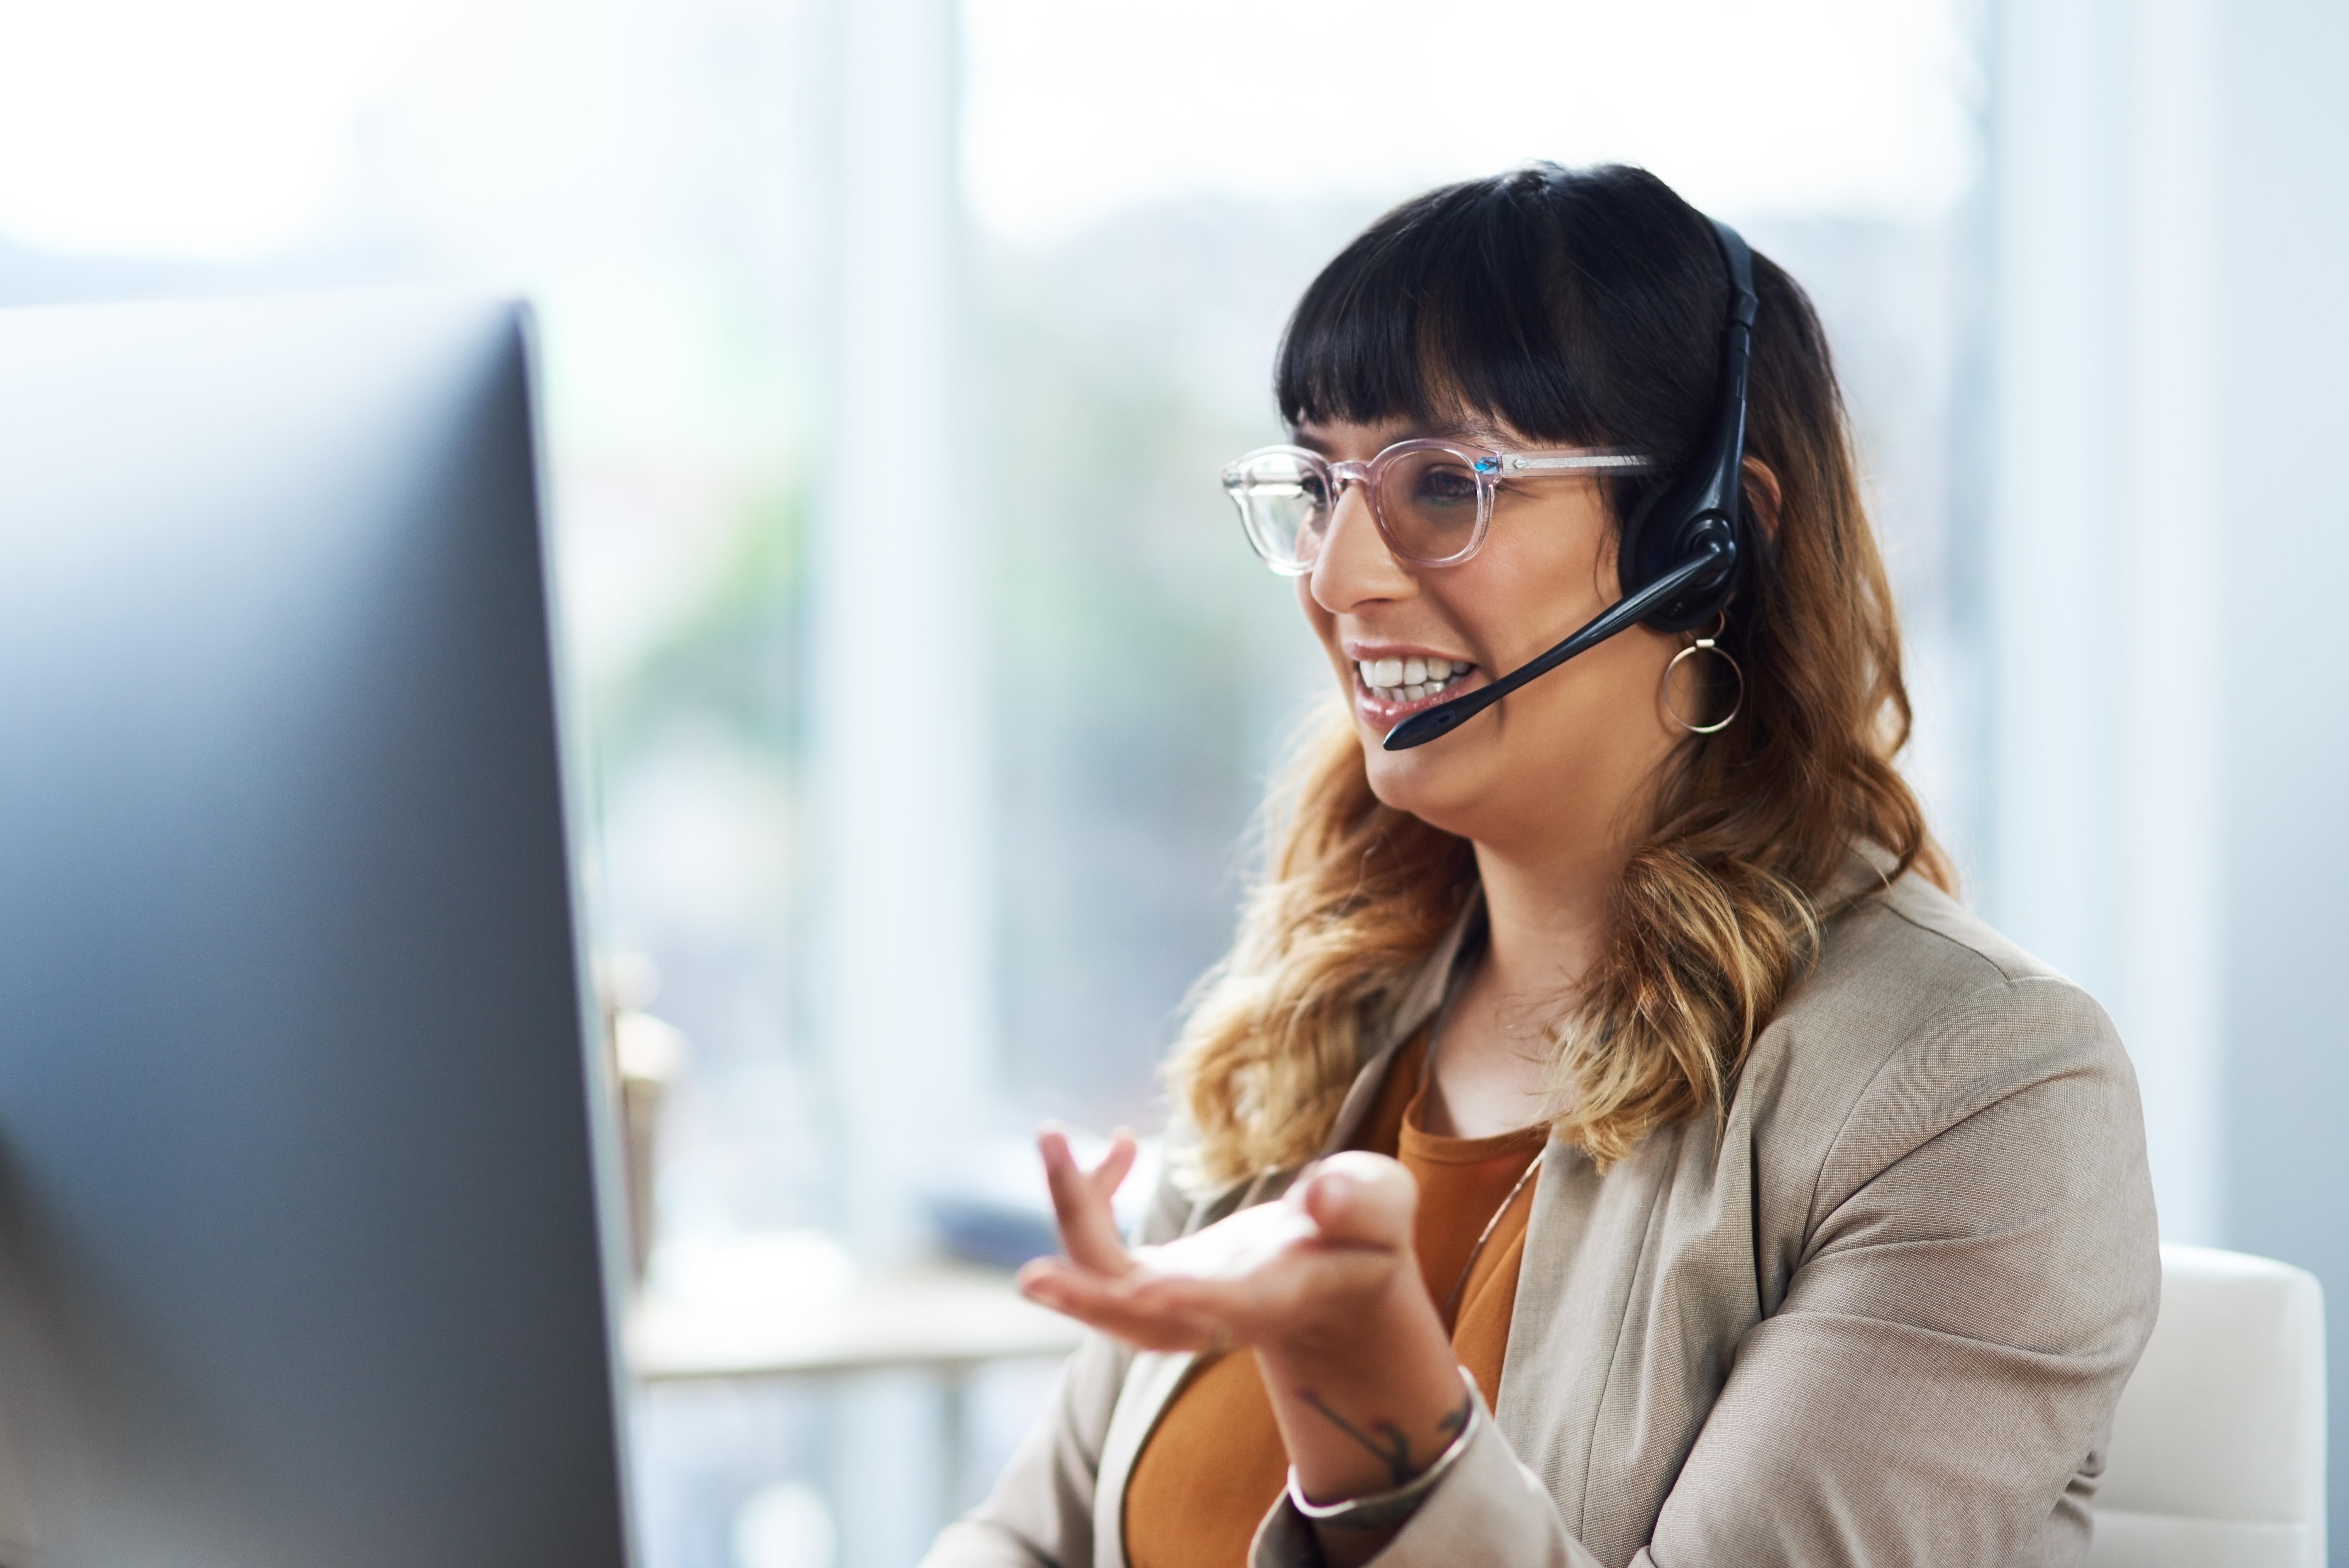 customer service representative wear headset with a smile